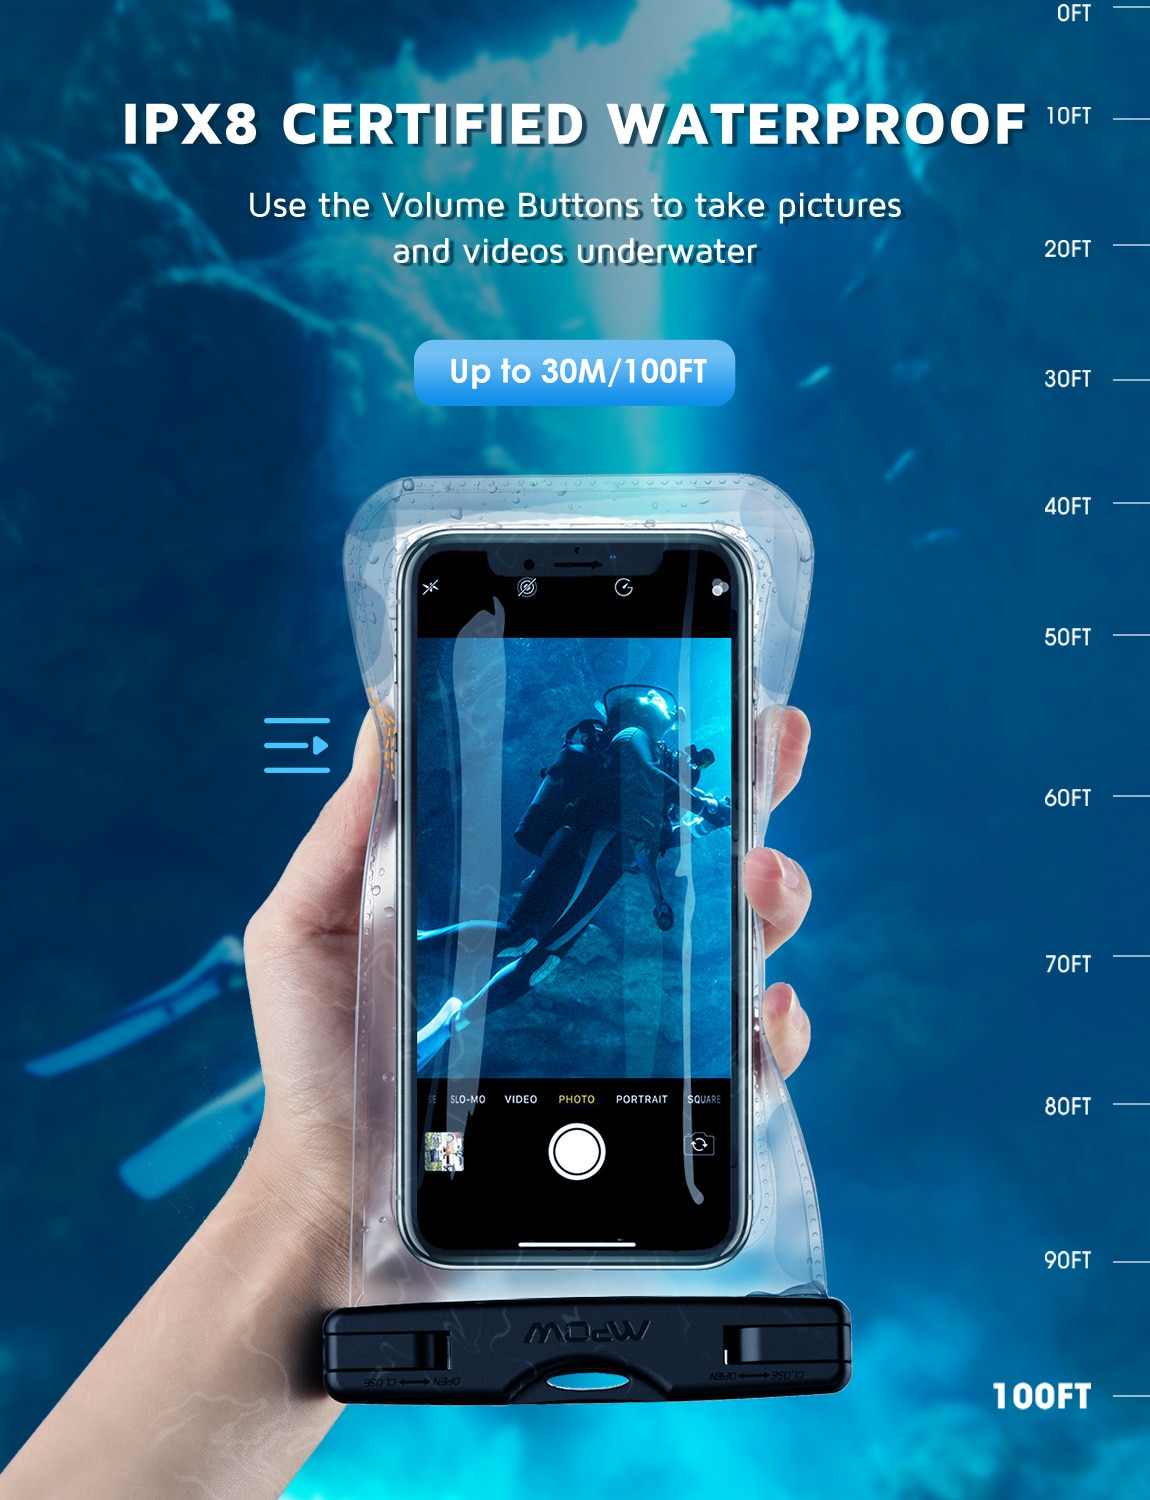 H0c6008882f8b46899a5a58ac06903833X - 2PCS Mpow 097 IPX8 Waterproof Phone Bag Pouch Case Universal for 7.0 inch Phones Home Button Cutout Take Photo Underwater IP68